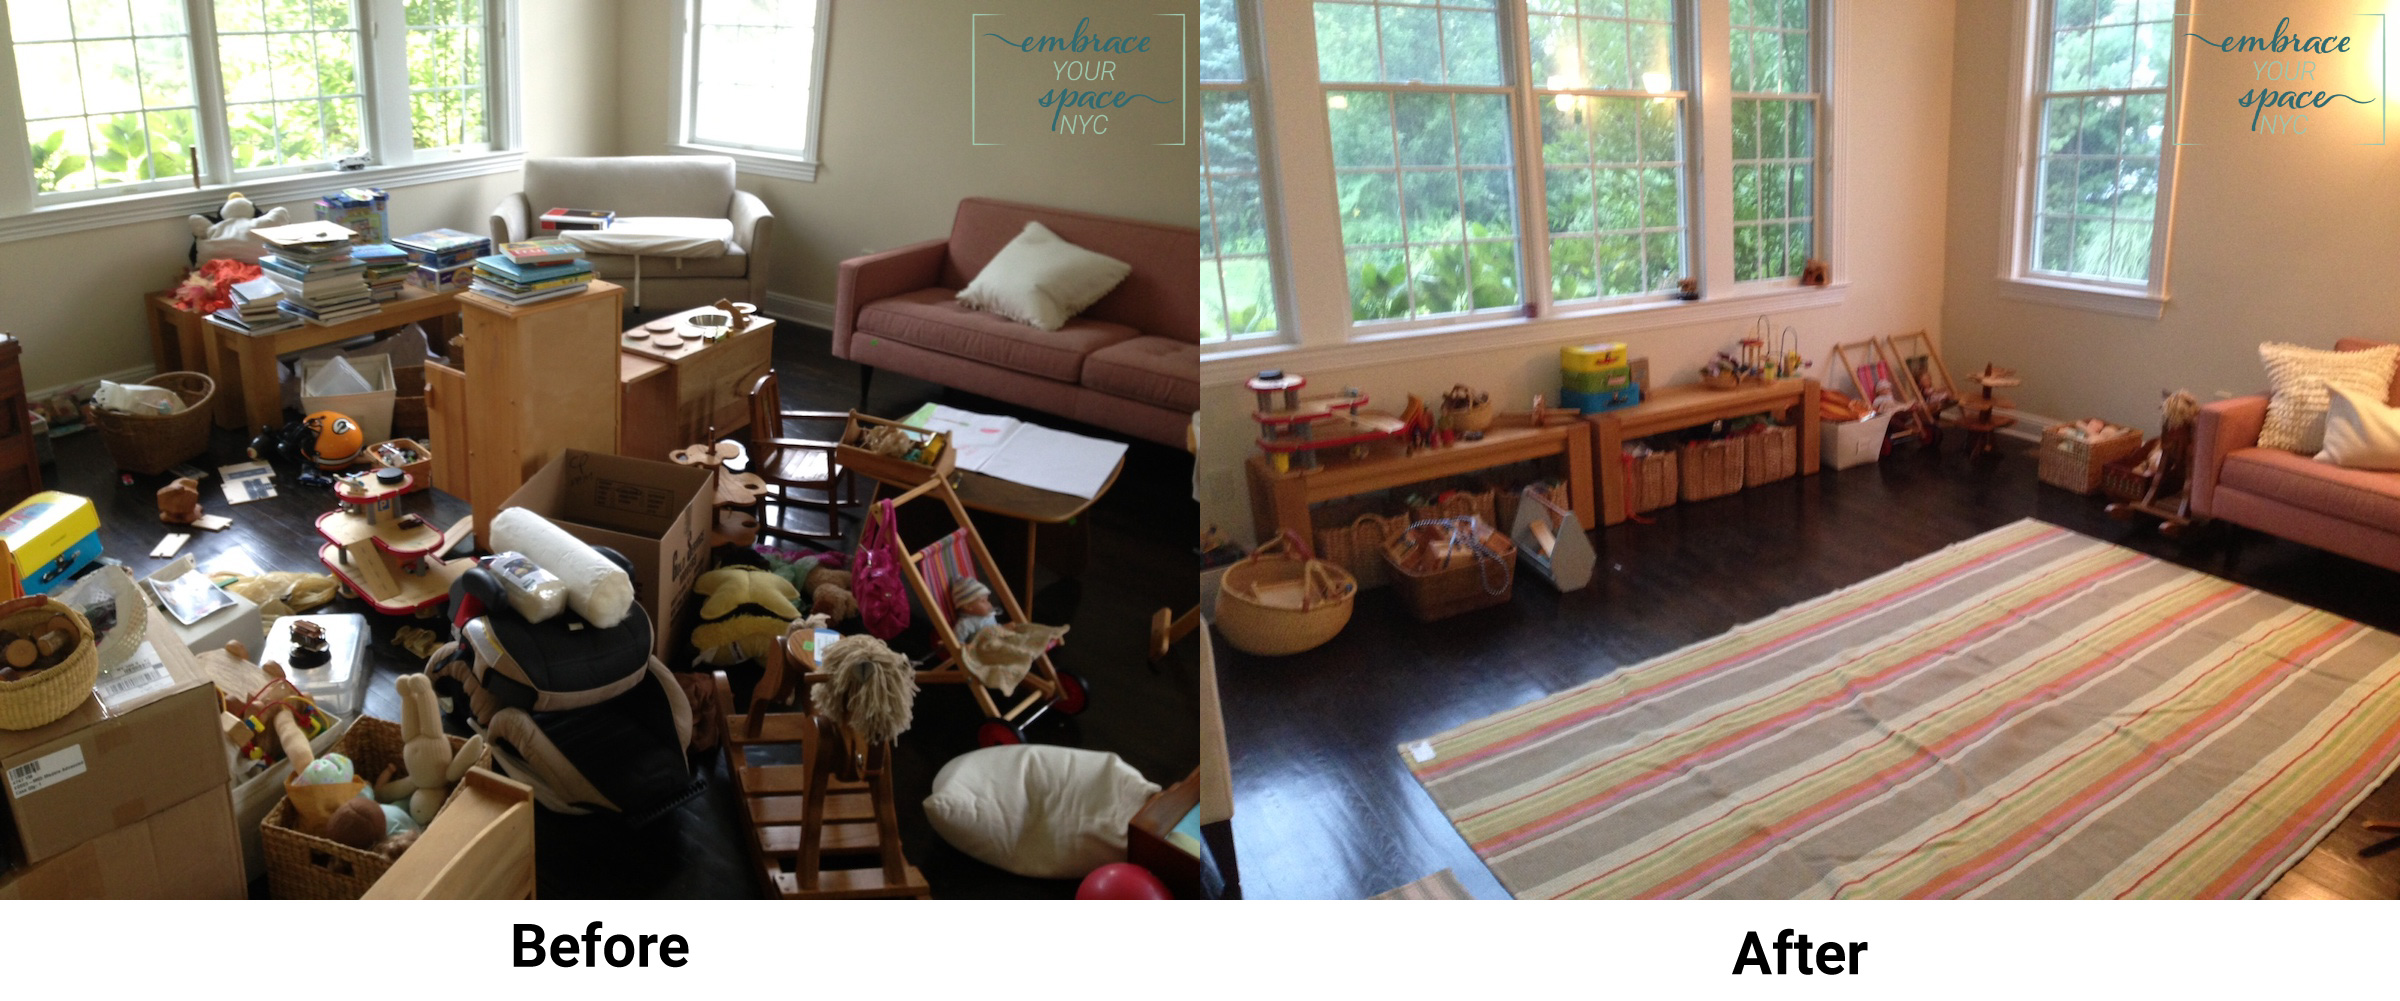 Everyday Organizing Embrace Your Space Nyc